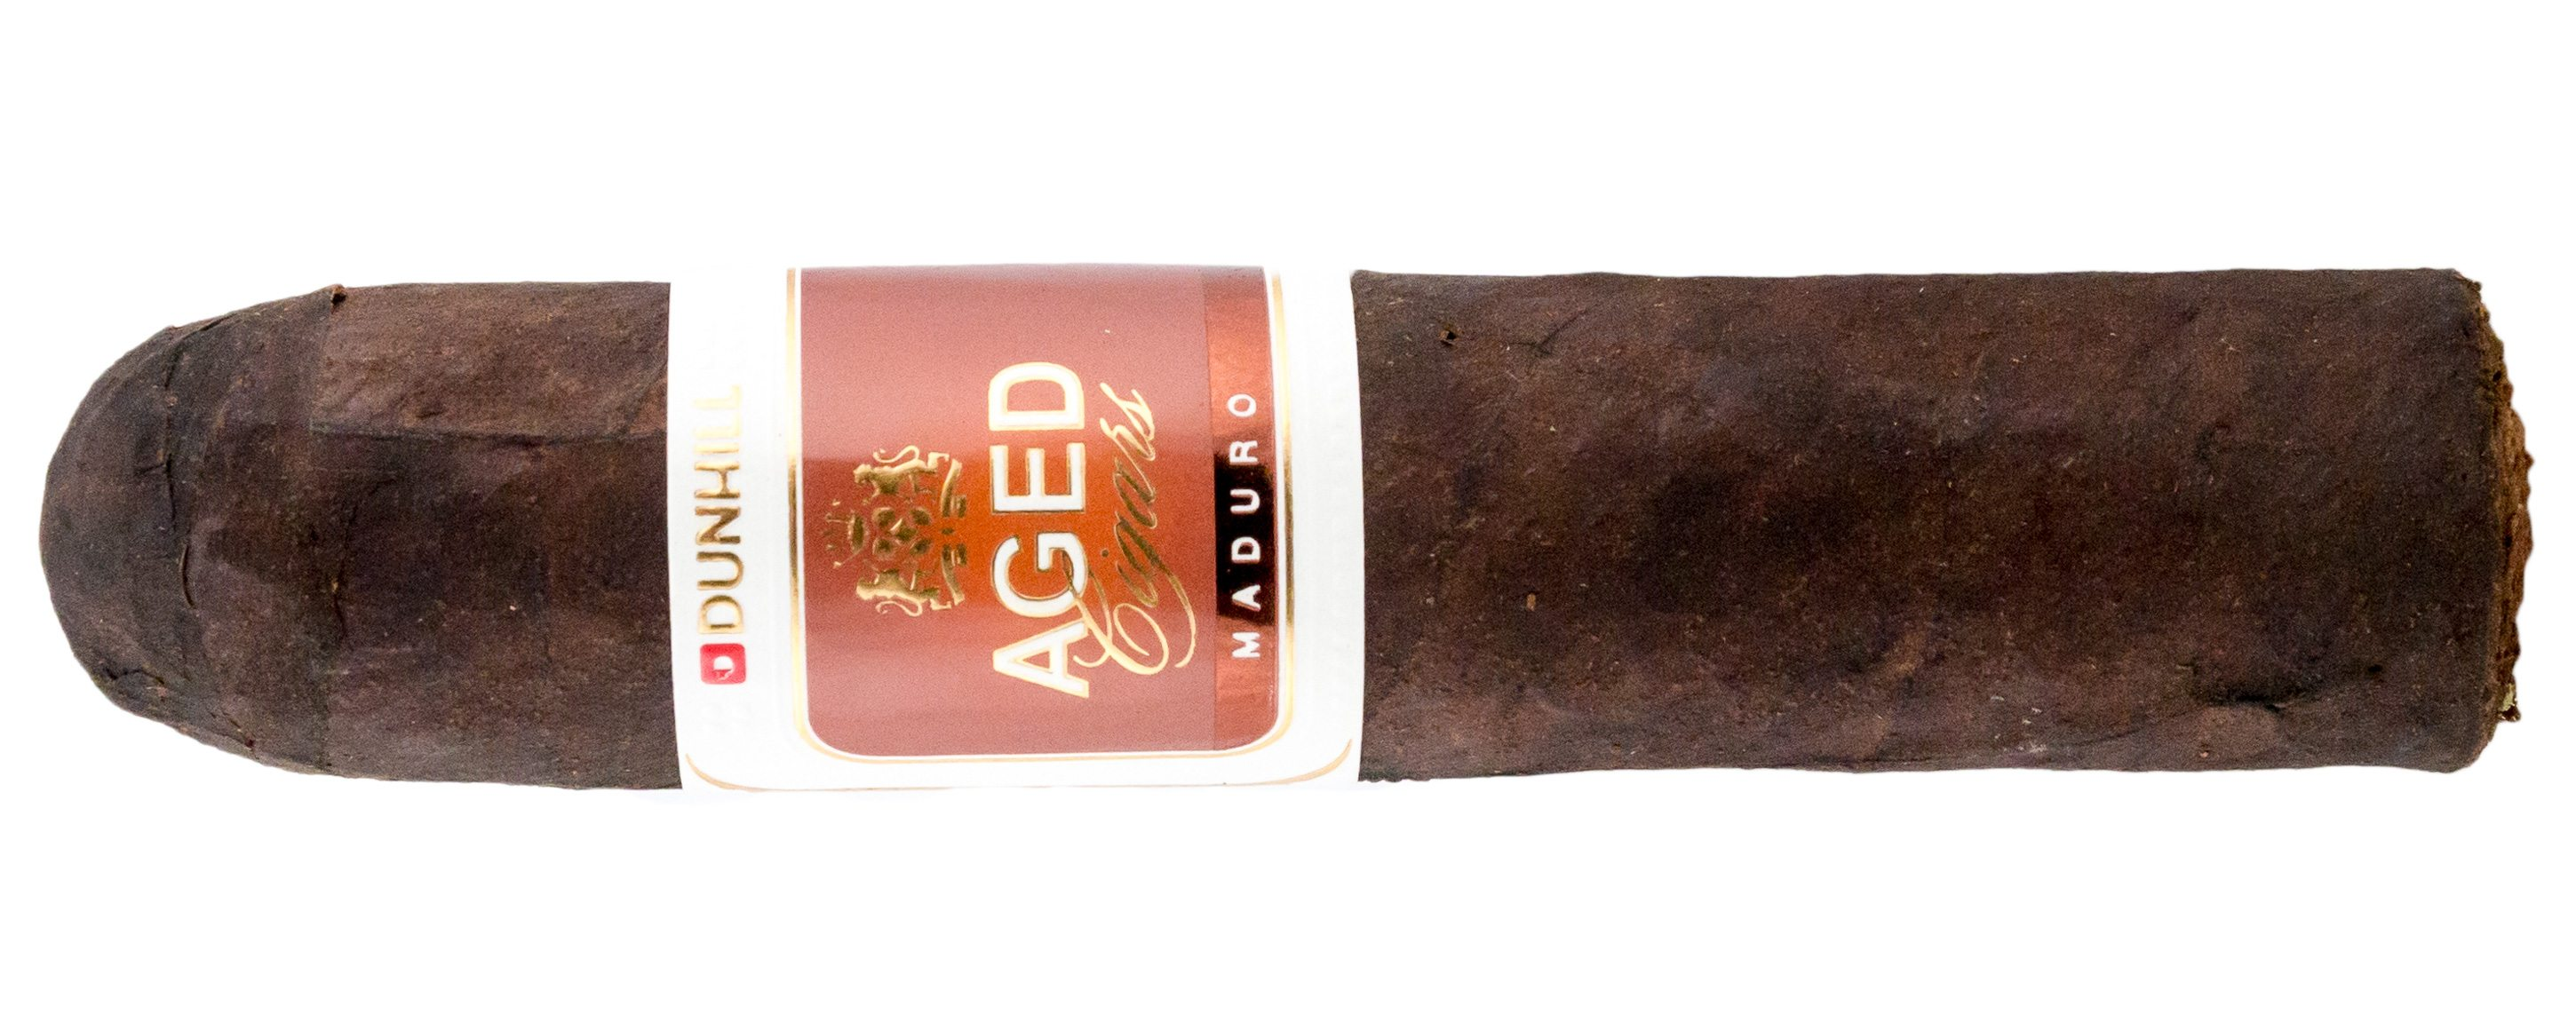 Blind Cigar Review: Dunhill | Aged Maduro Short Robusto